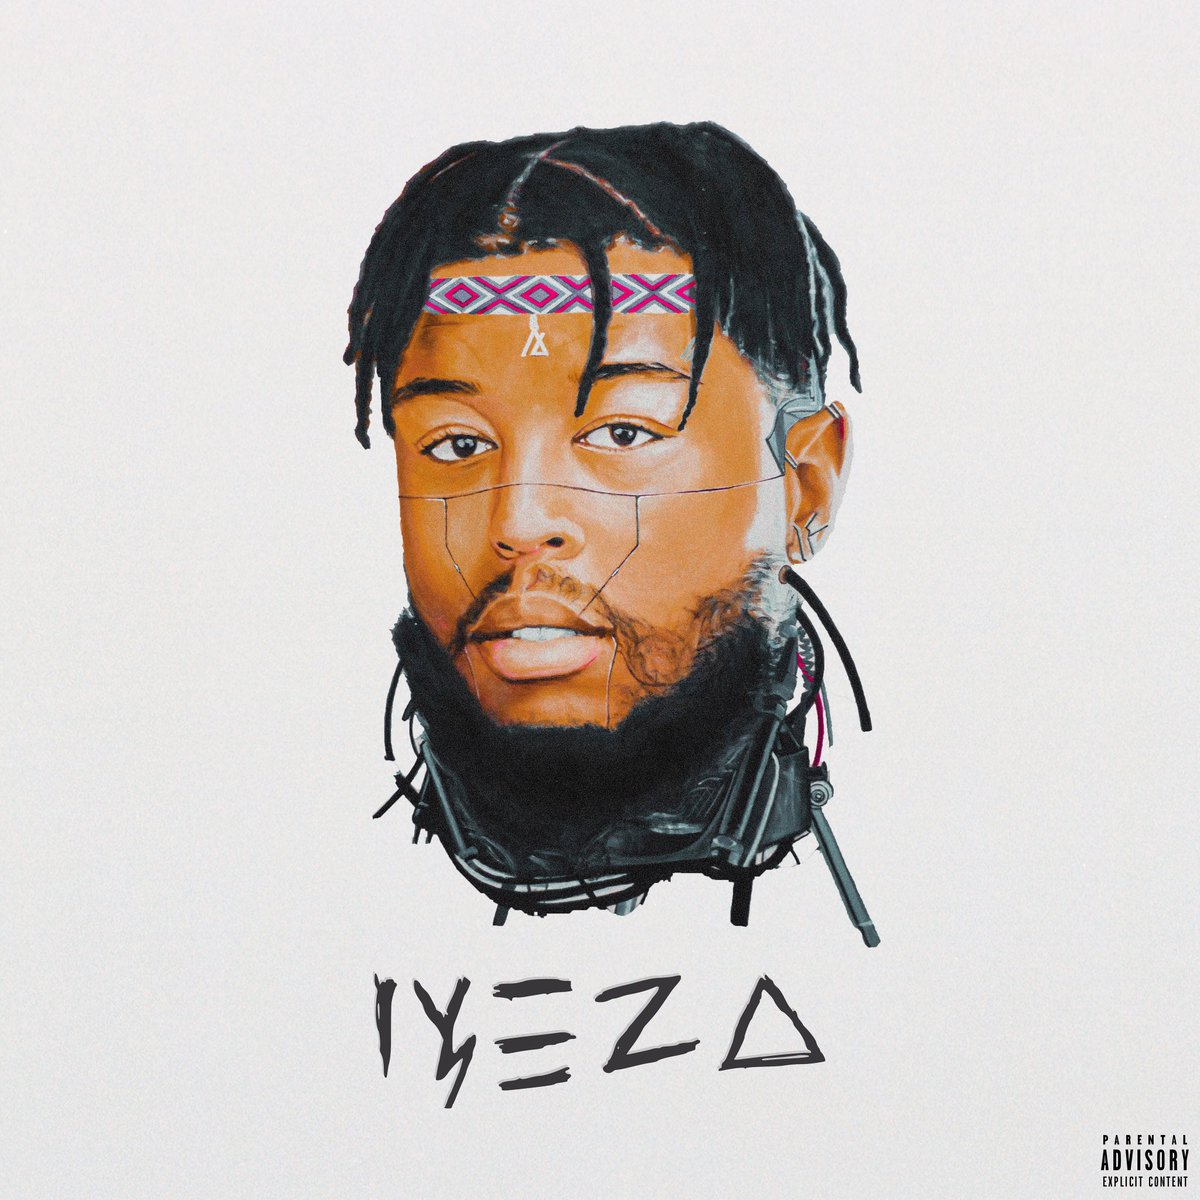 anatii Get Ready For Anatii's New #IYEZA Album Dropping Tomorrow DopVm2yXgAAY 5M